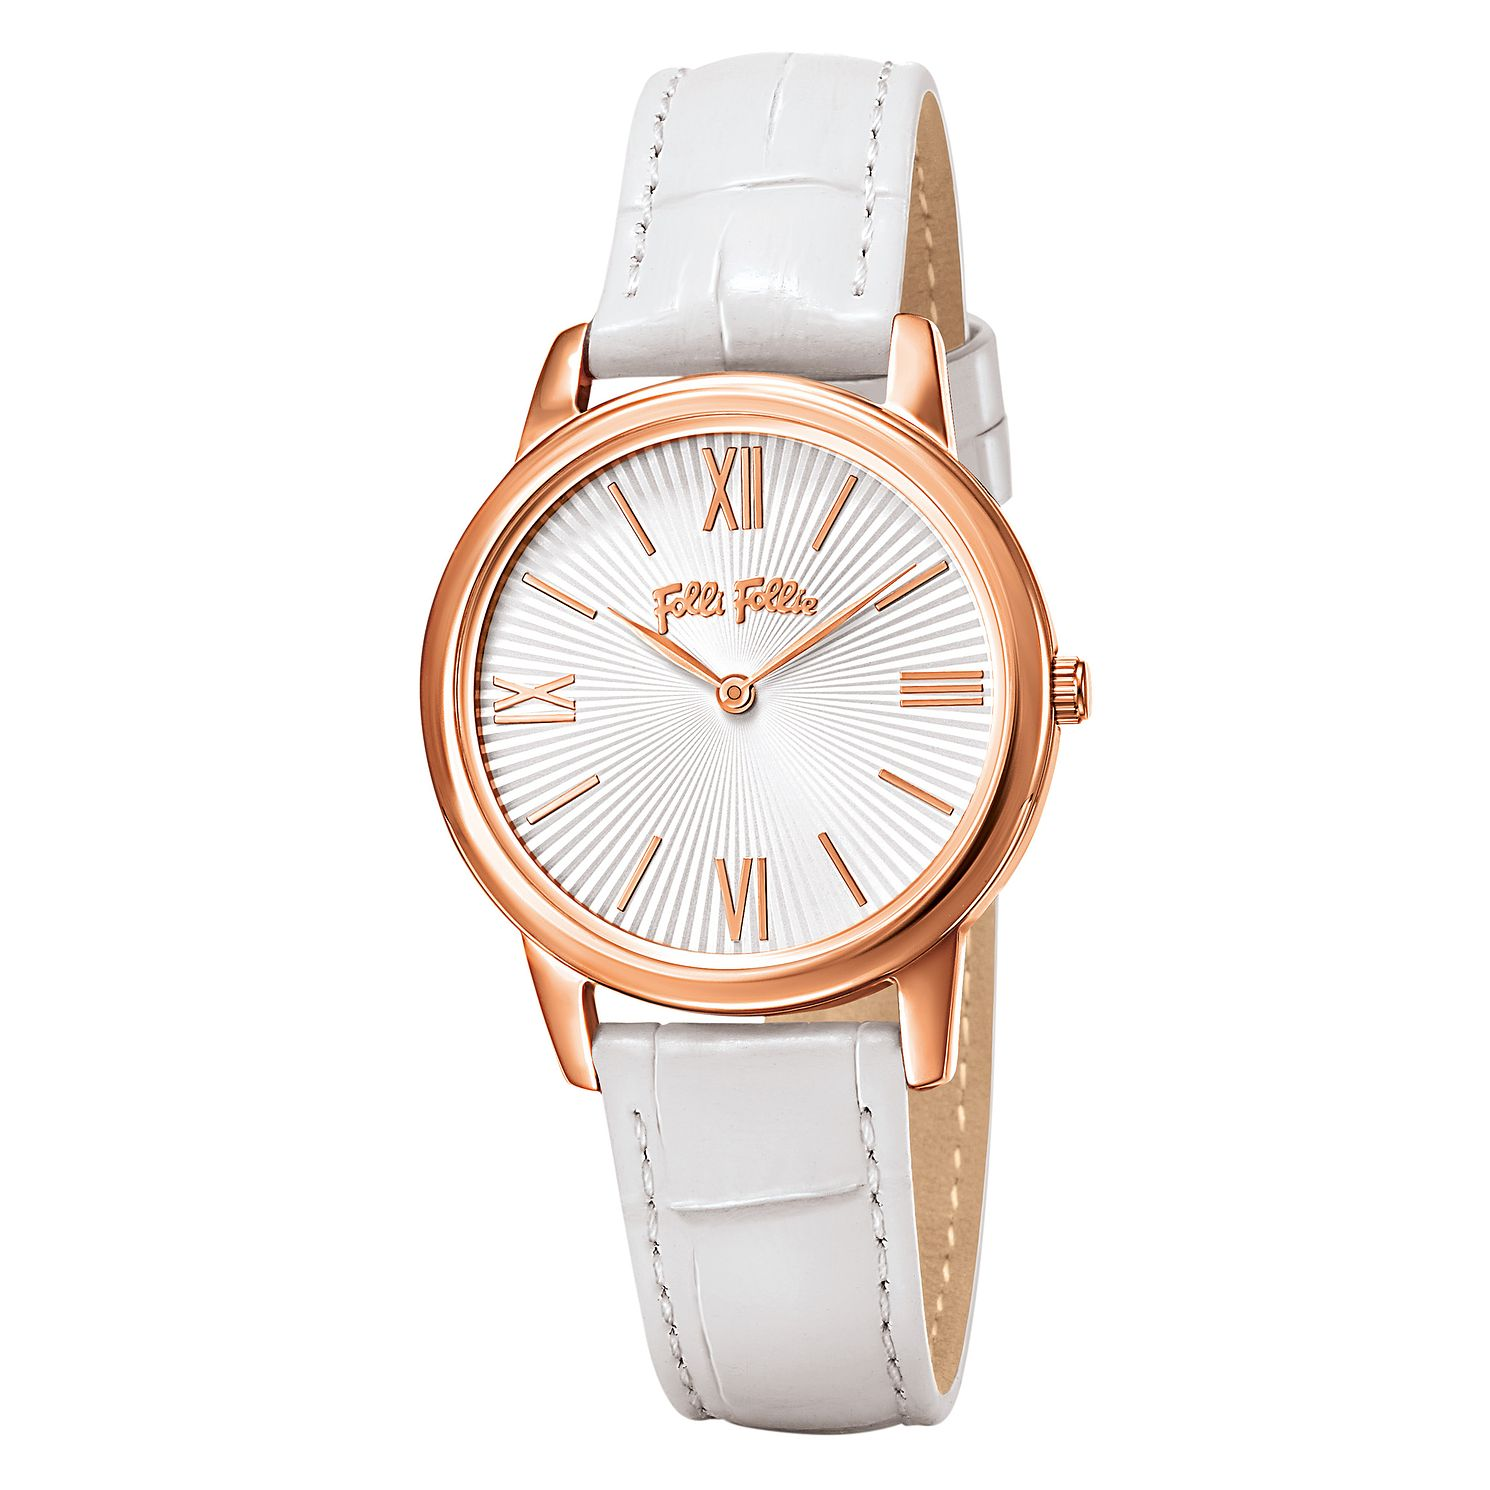 Folli Follie Ladies' Rose Gold Plated Watch - Product number 5001692